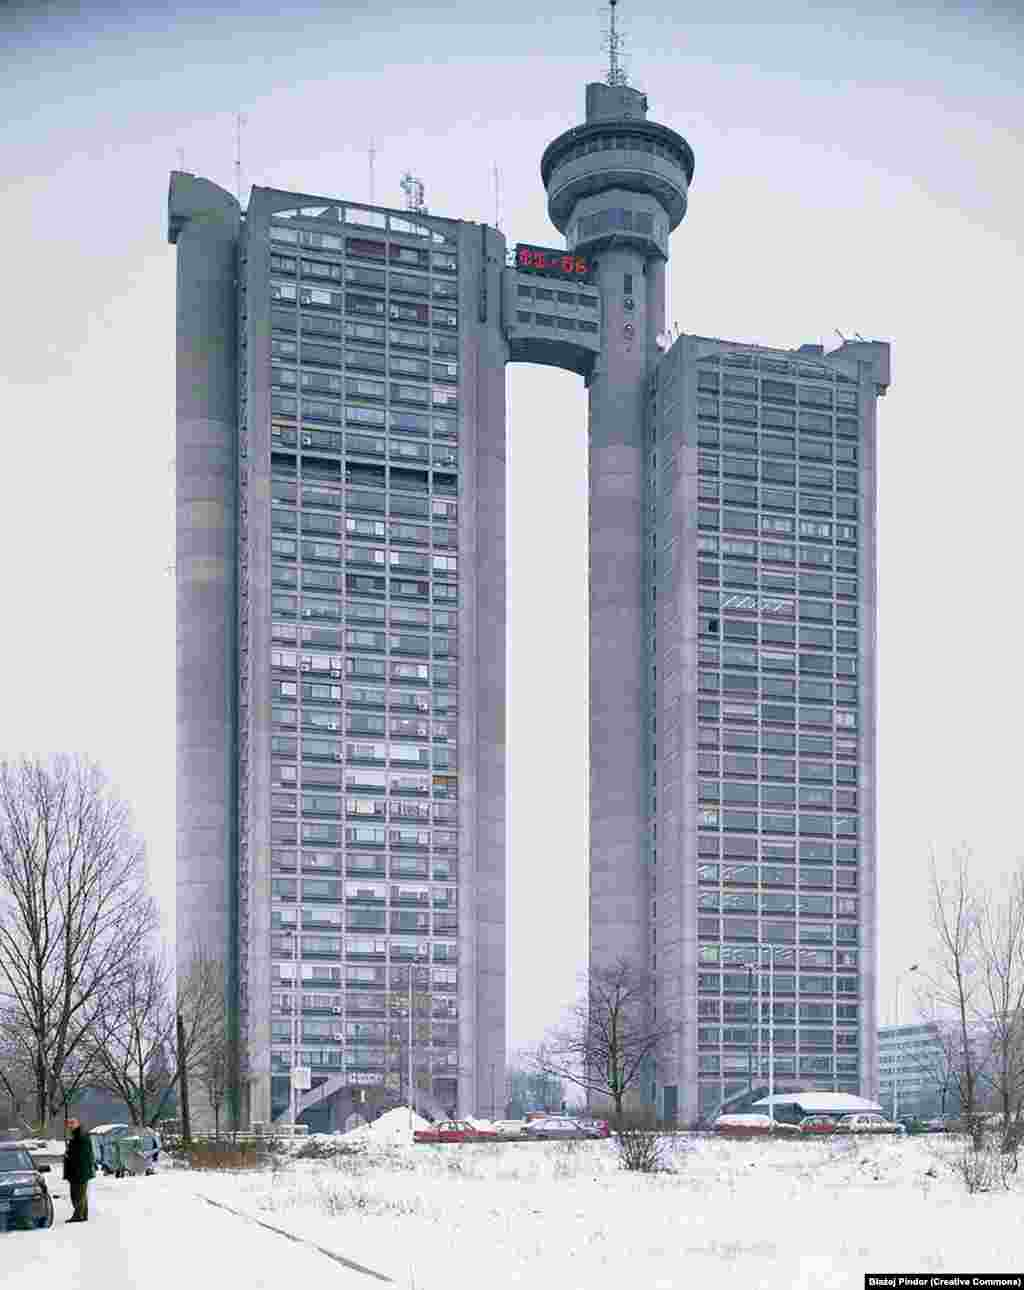 The Genex Tower on the outskirts of Belgrade. Brutalist architecture was a popular style throughout the 1950s and 1960s that favored looming chunks of exposed concrete.